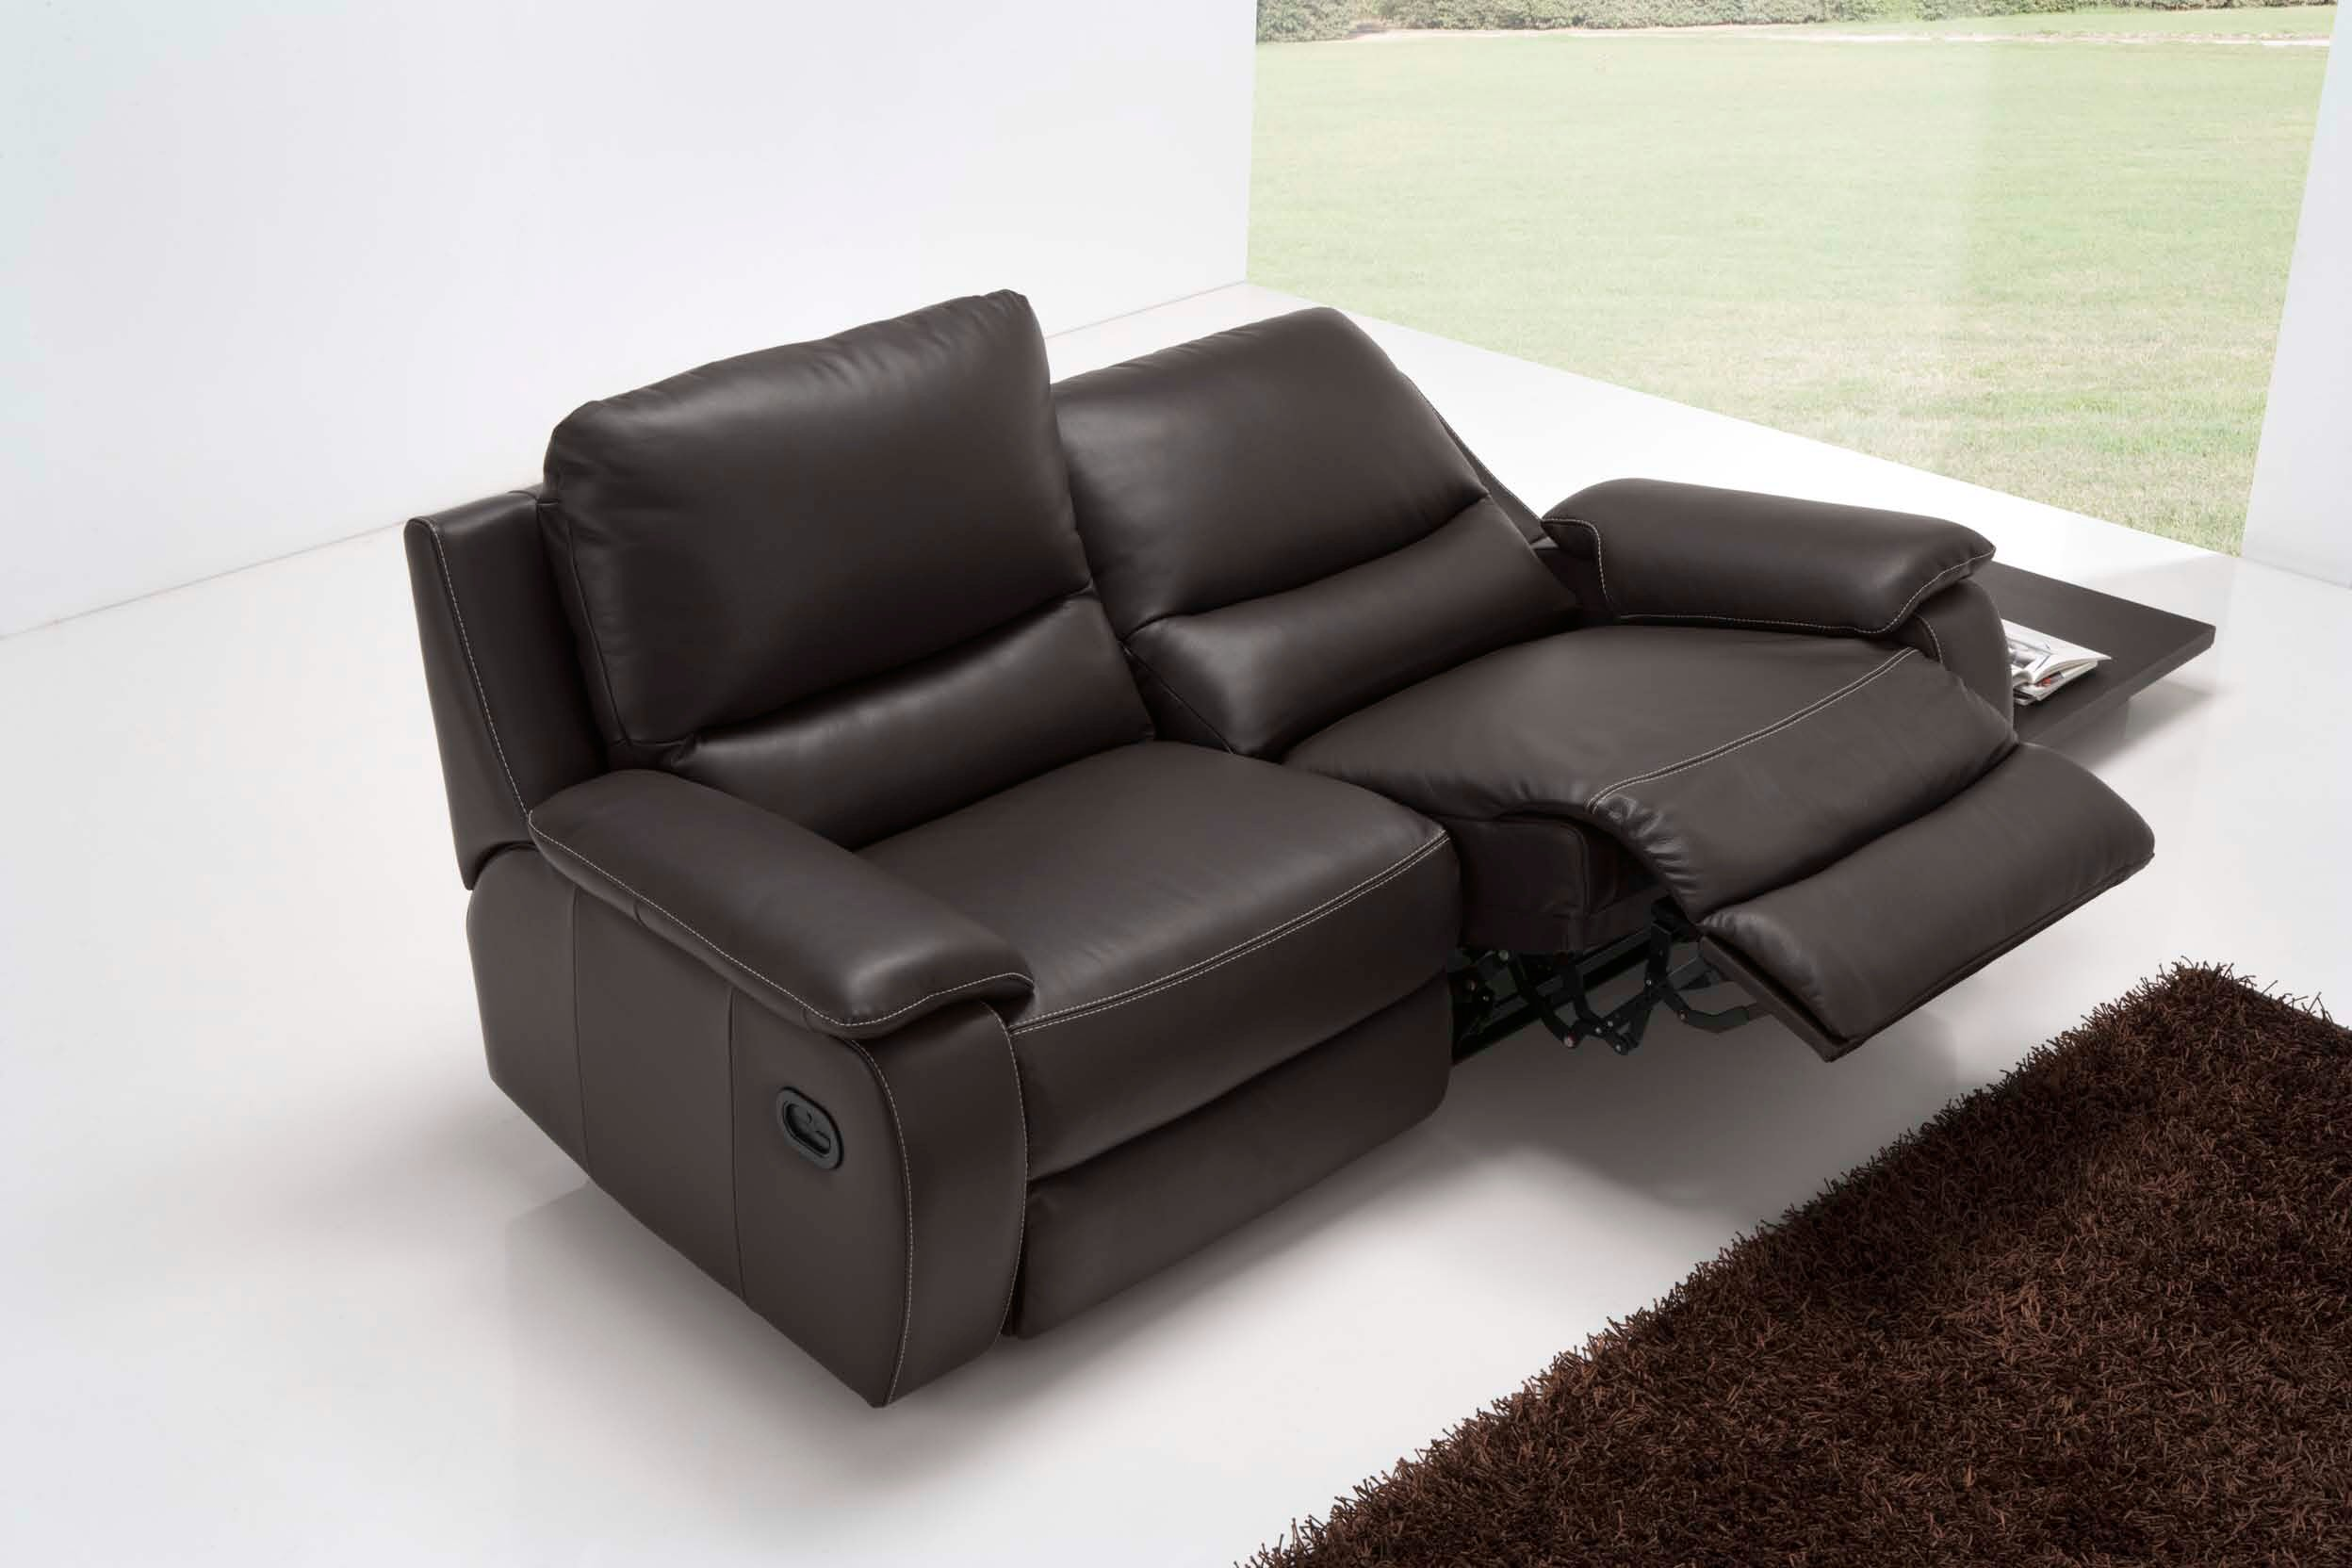 modena 2 seater reclining leather sofa tidafors corner measurements alexis pure comfort furniture